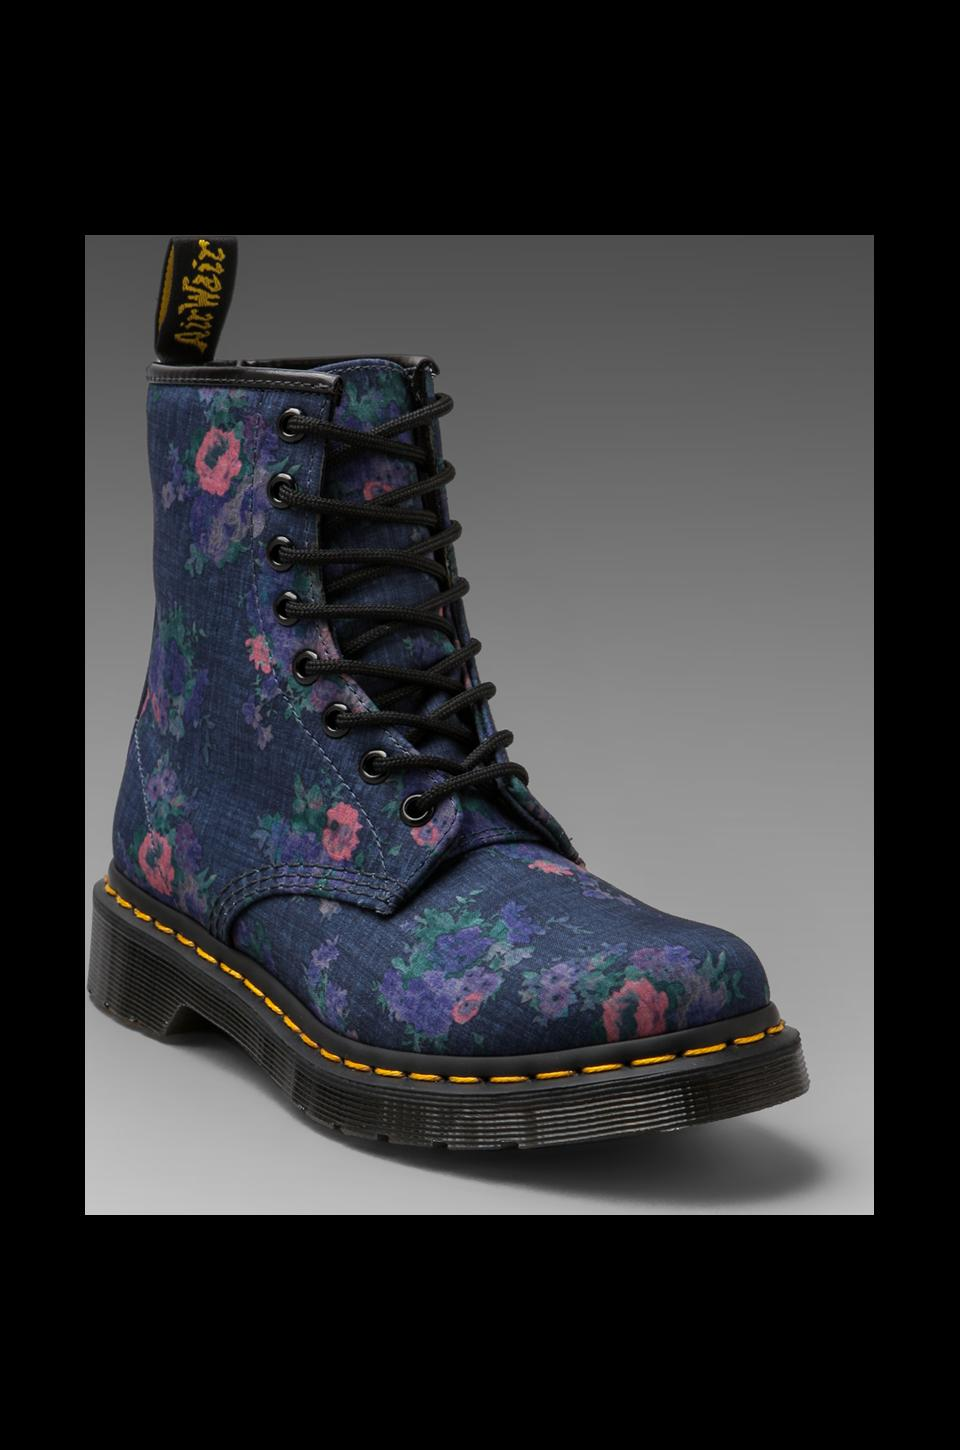 Dr. Martens Castle 8-Eye Boot in Denim Floral